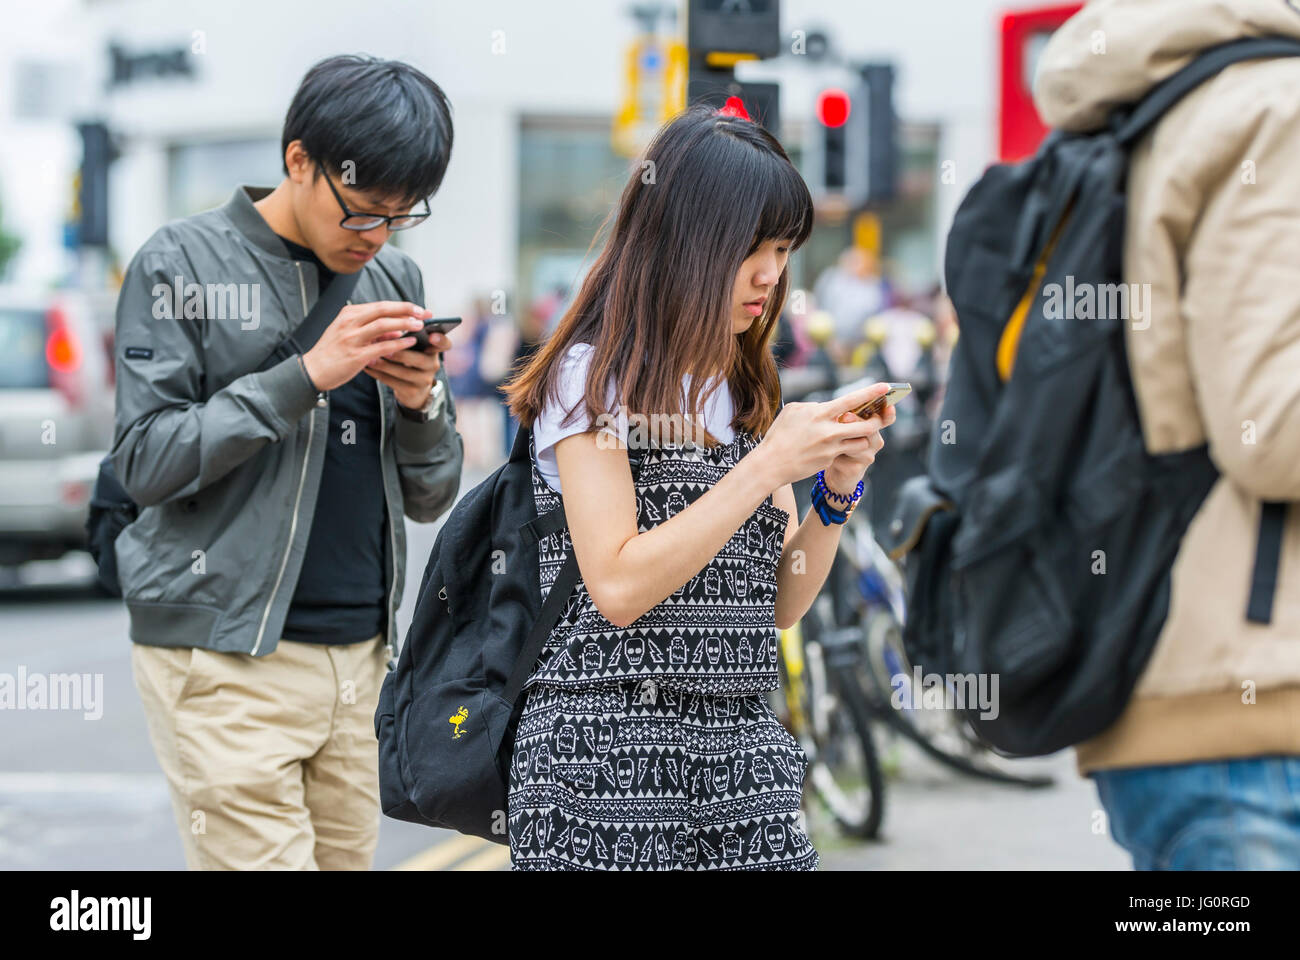 Always connected concept. Japanese tourists walking in a city while looking down and using their smartphones. - Stock Image